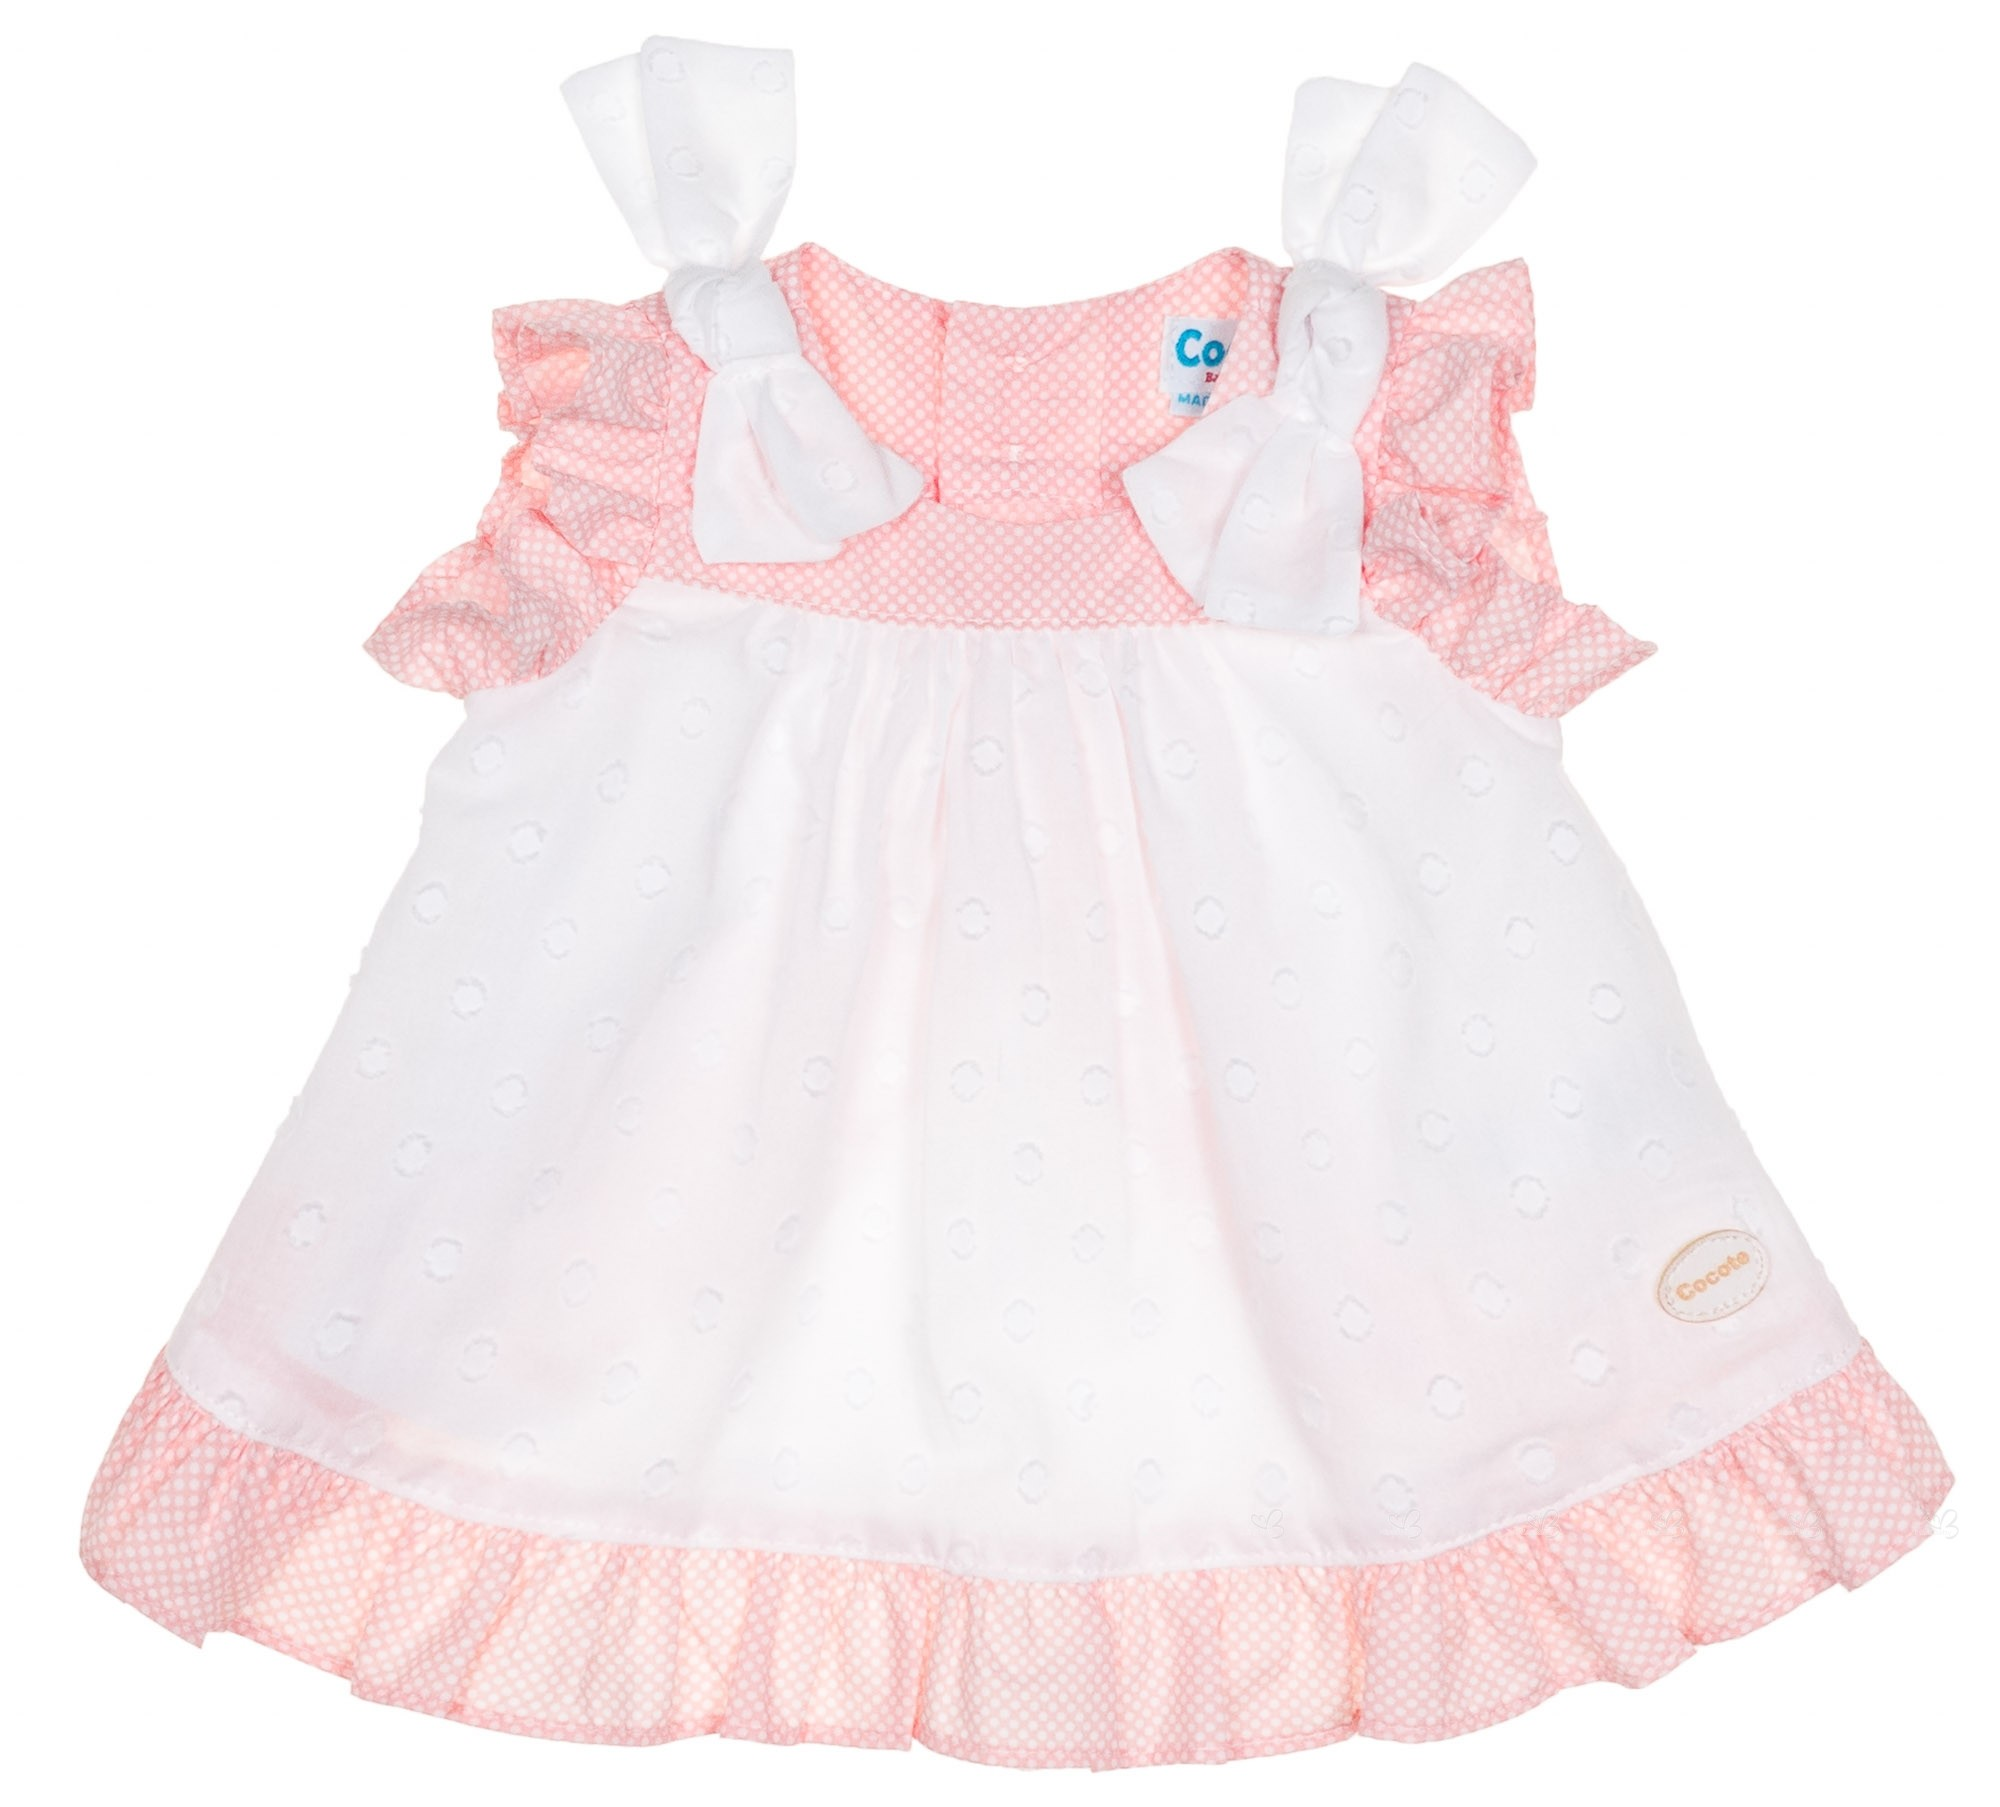 Cocote Baby Girls Pink & White Polka Dot Dress Set